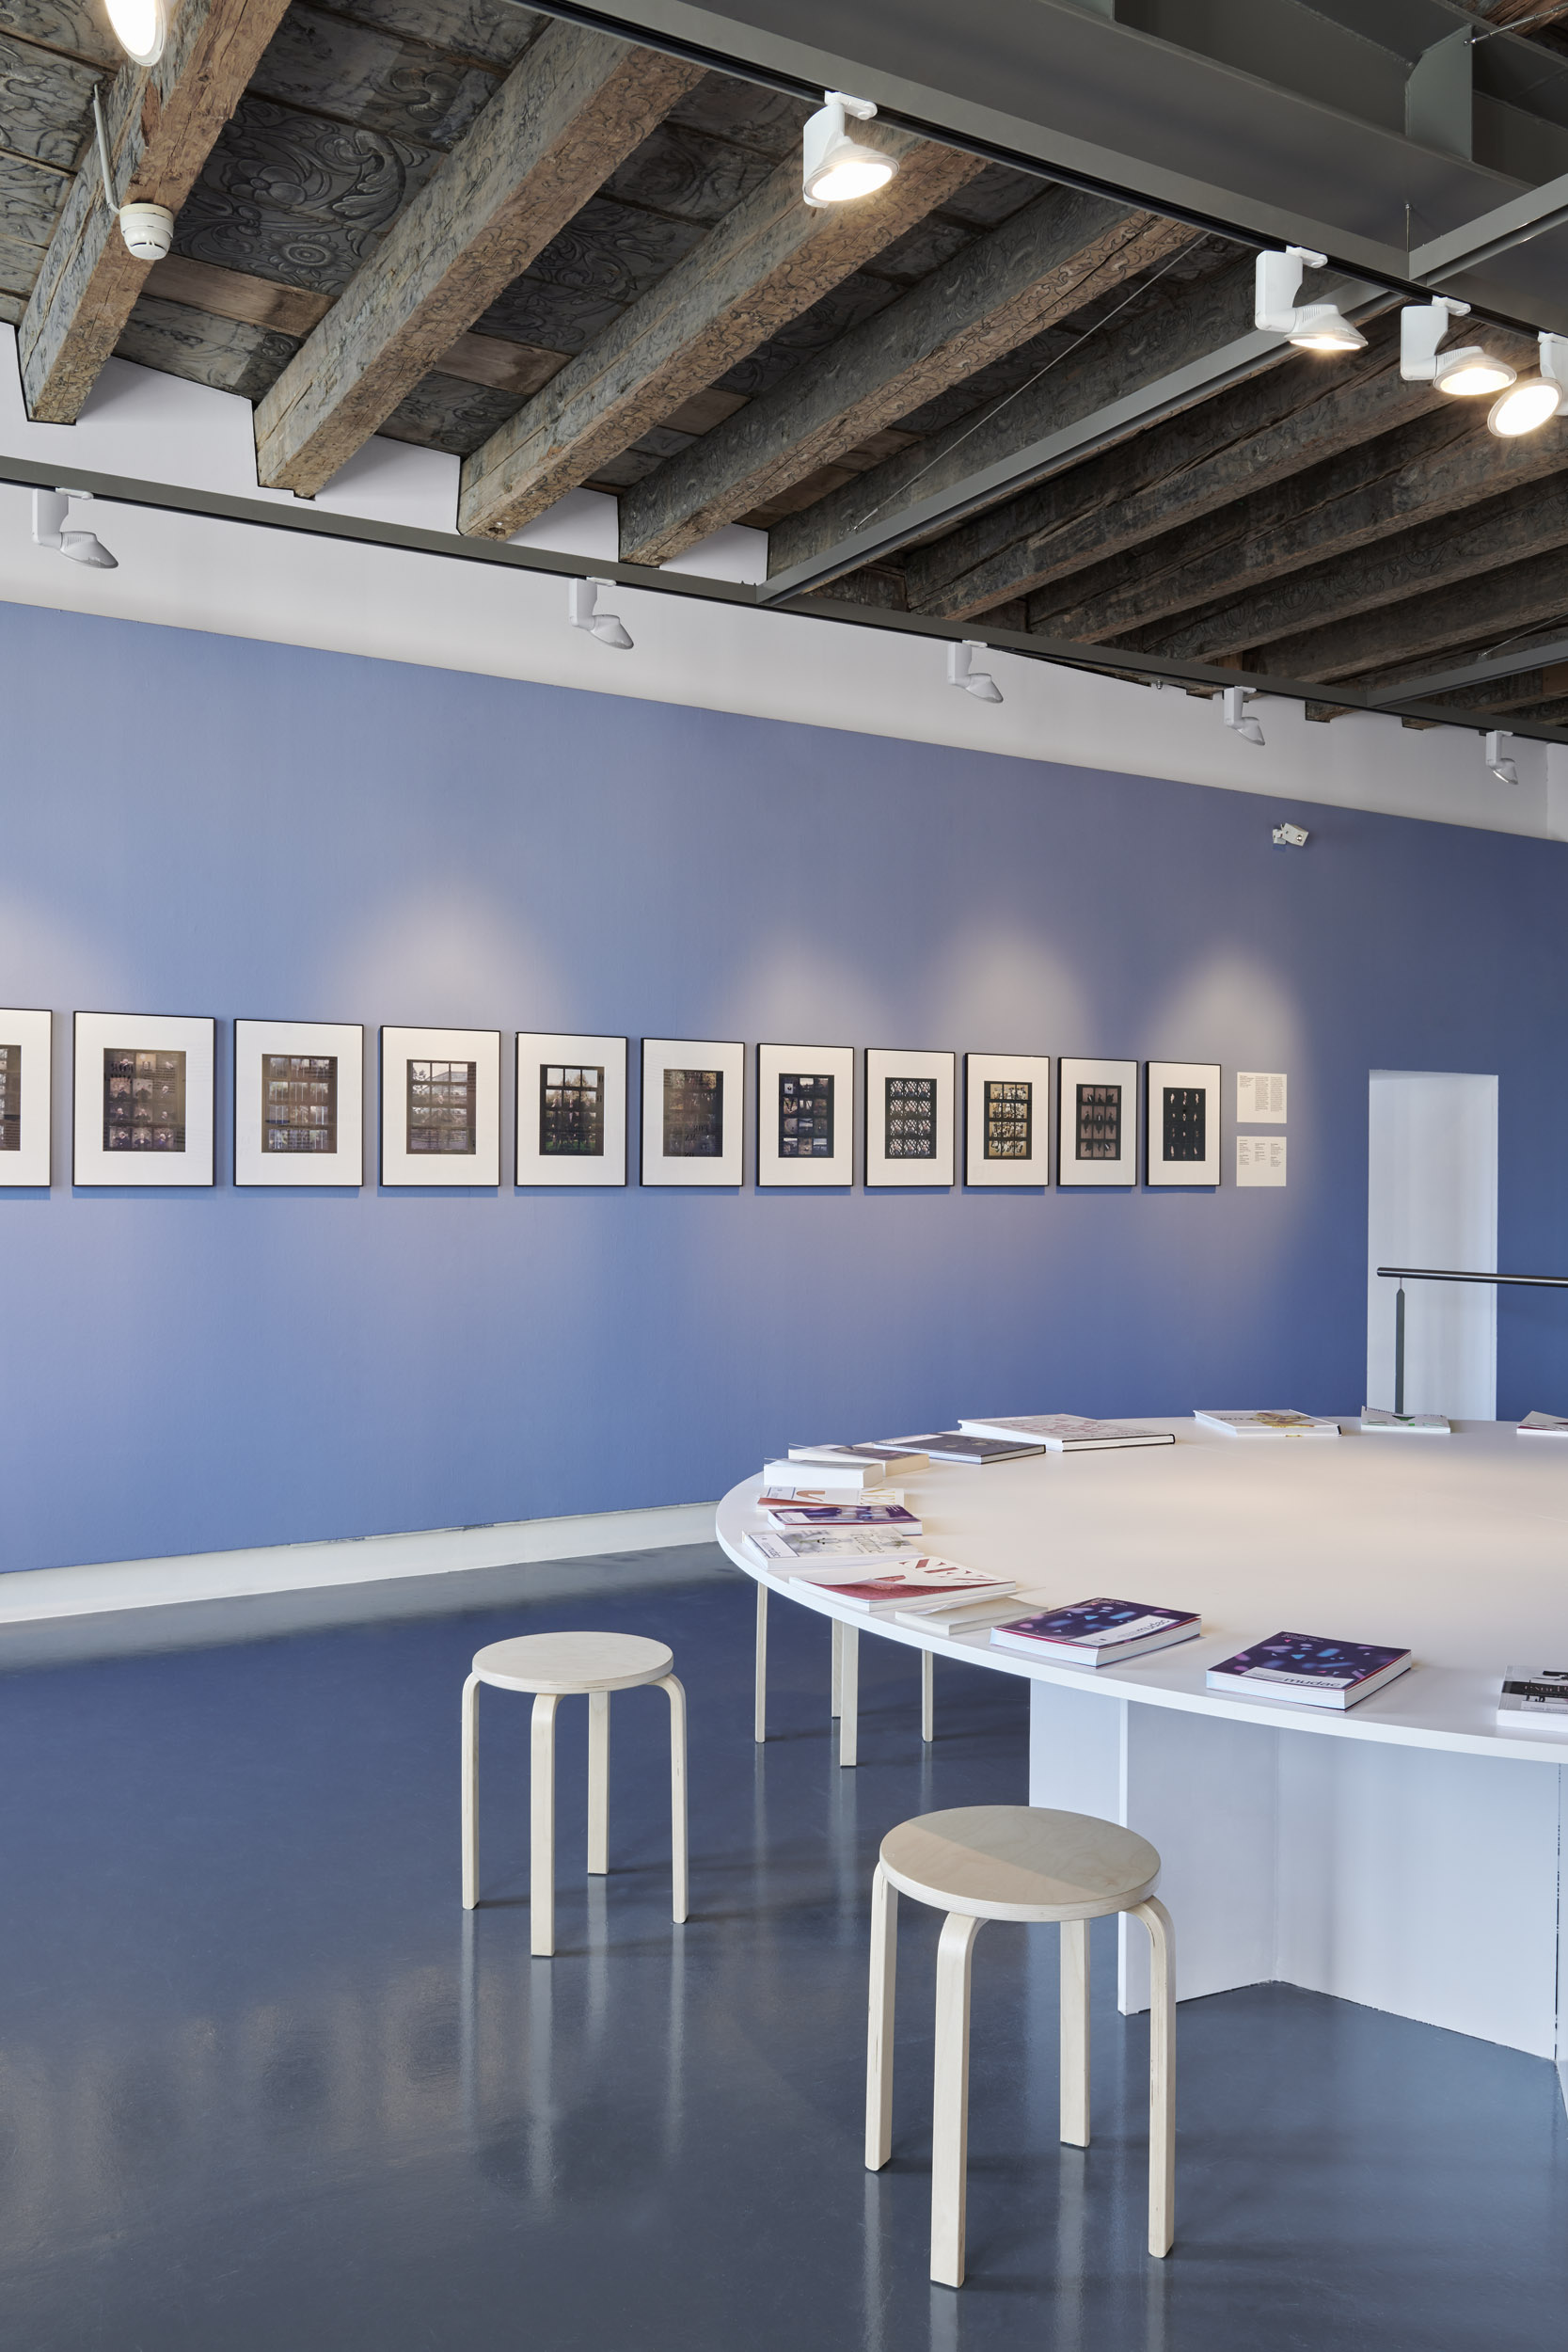 The information room of the Nez a Nez exhibition with portraits of the perfumers